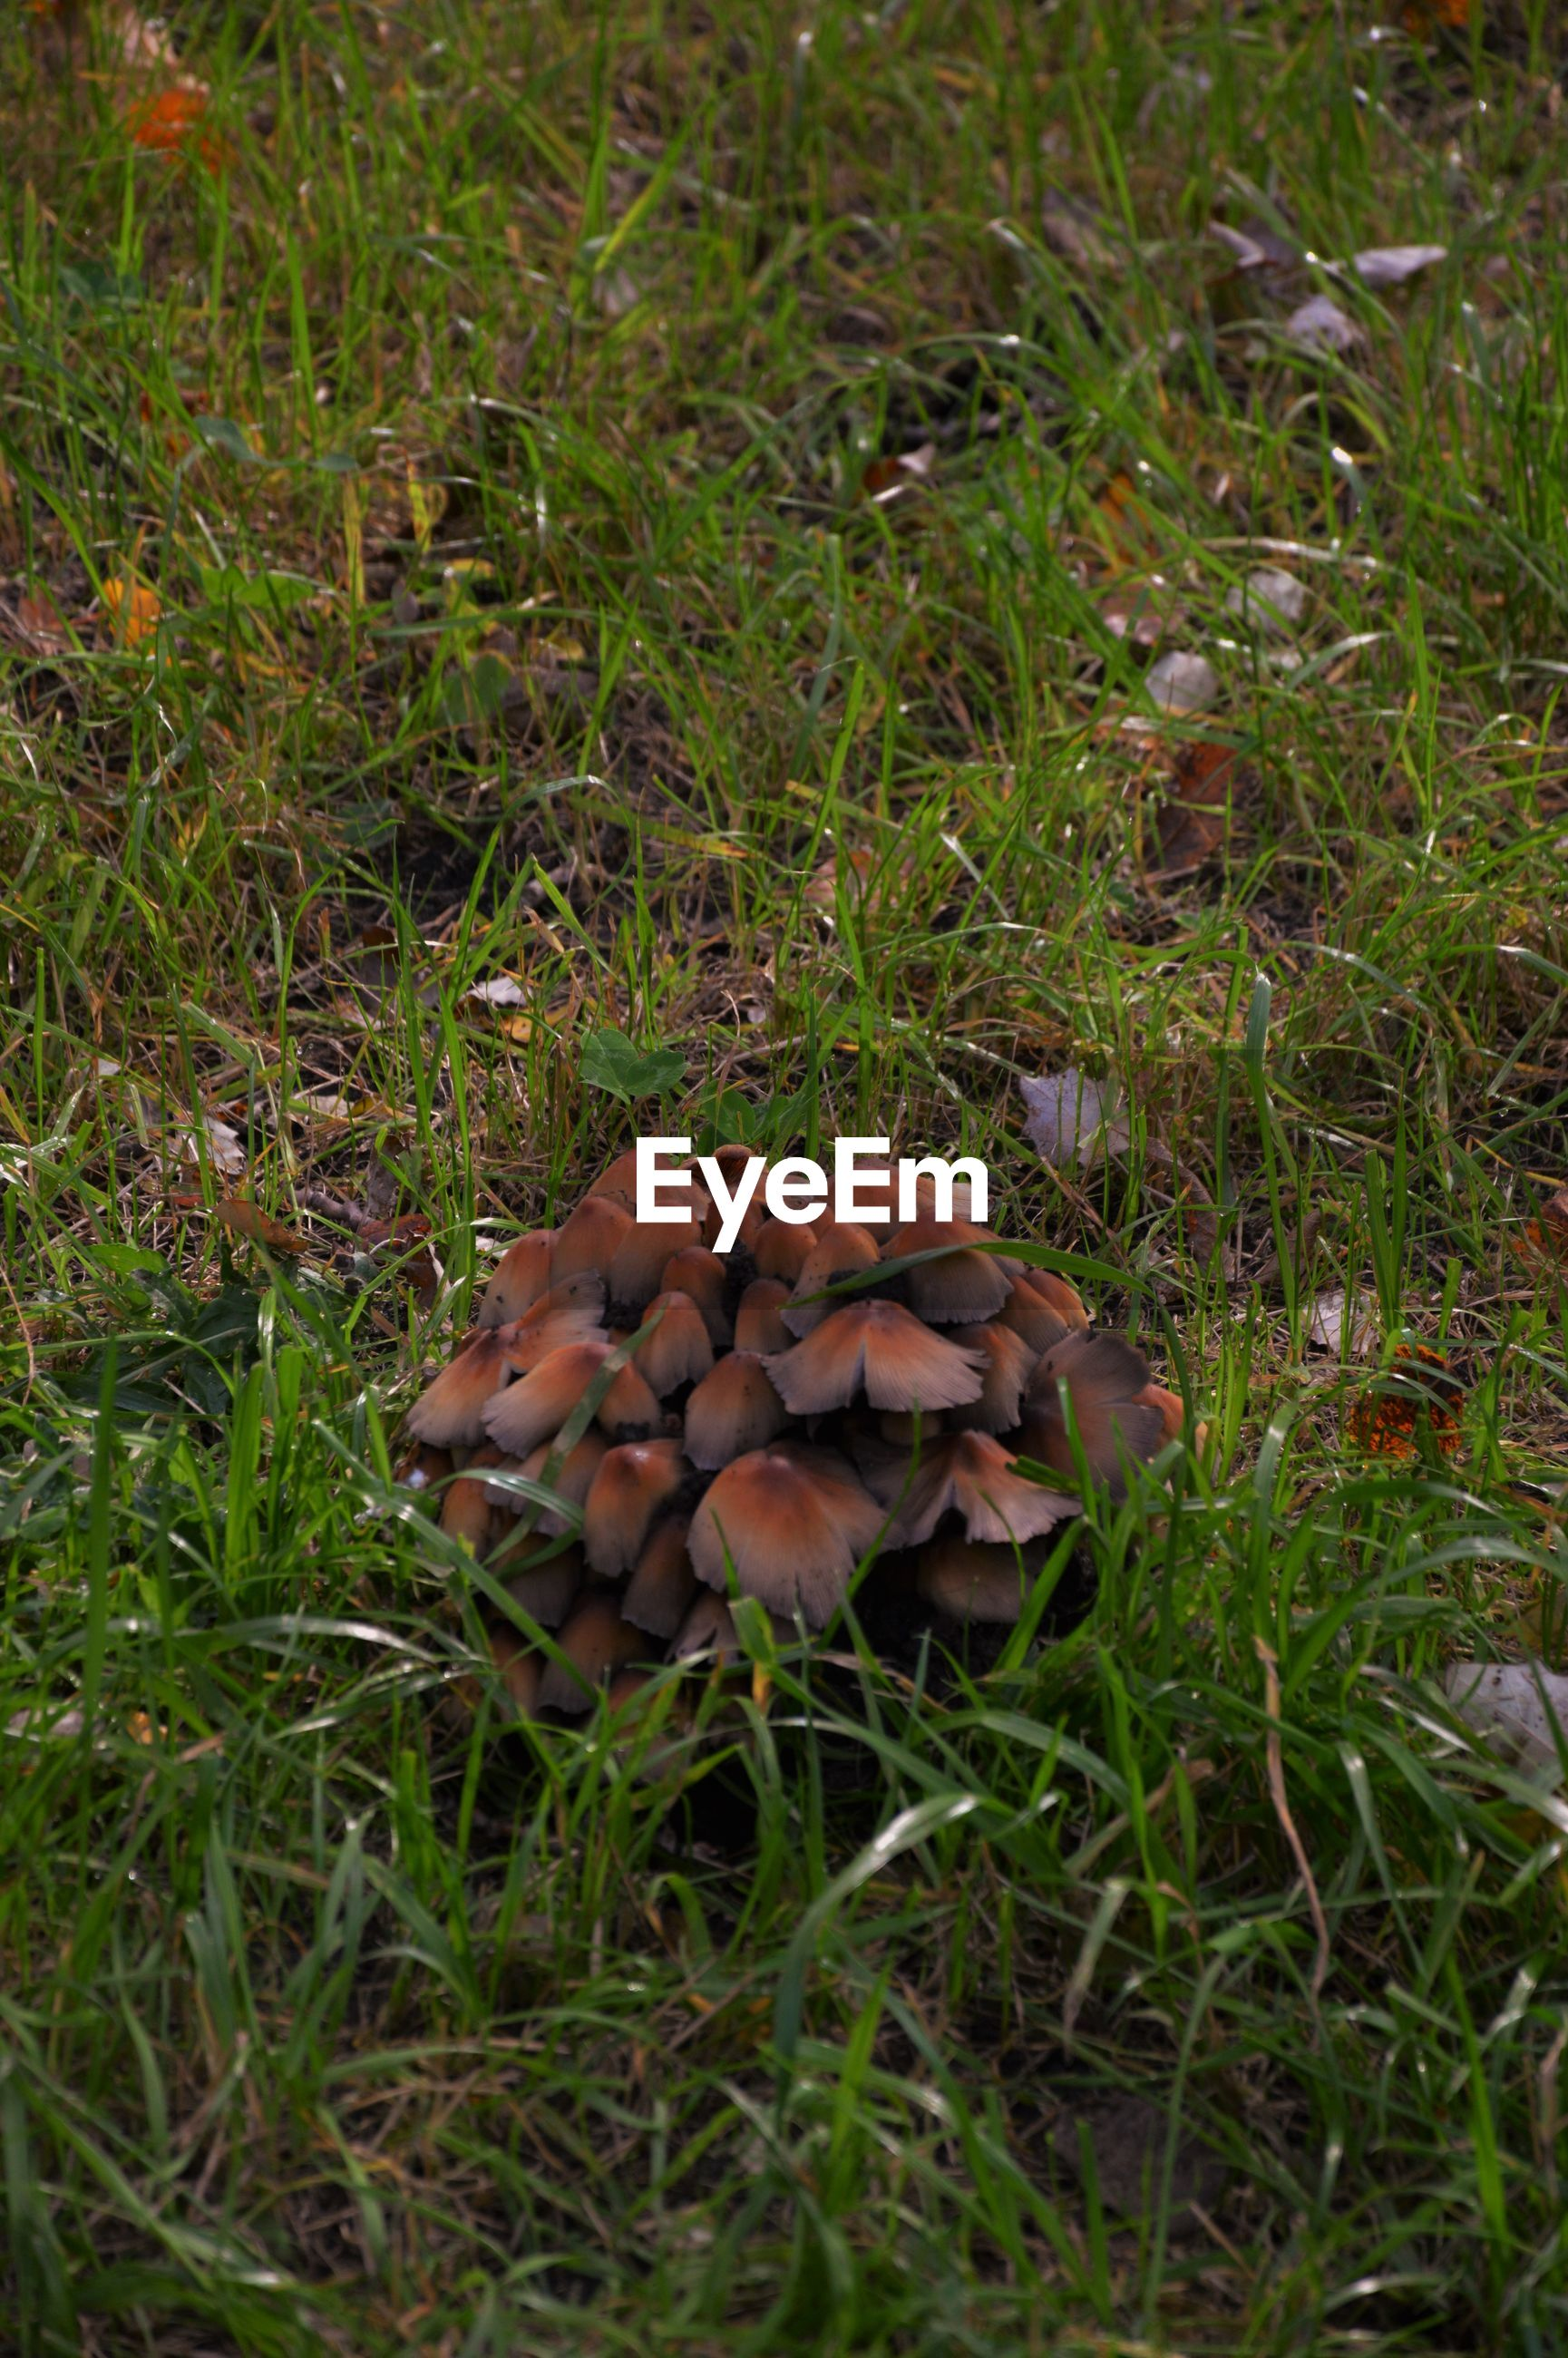 mushroom, fungus, growth, toadstool, field, grass, nature, close-up, green color, wilderness, growing, brown, beauty in nature, uncultivated, day, grassy, fragility, freshness, outdoors, focus on foreground, tranquility, no people, non-urban scene, green